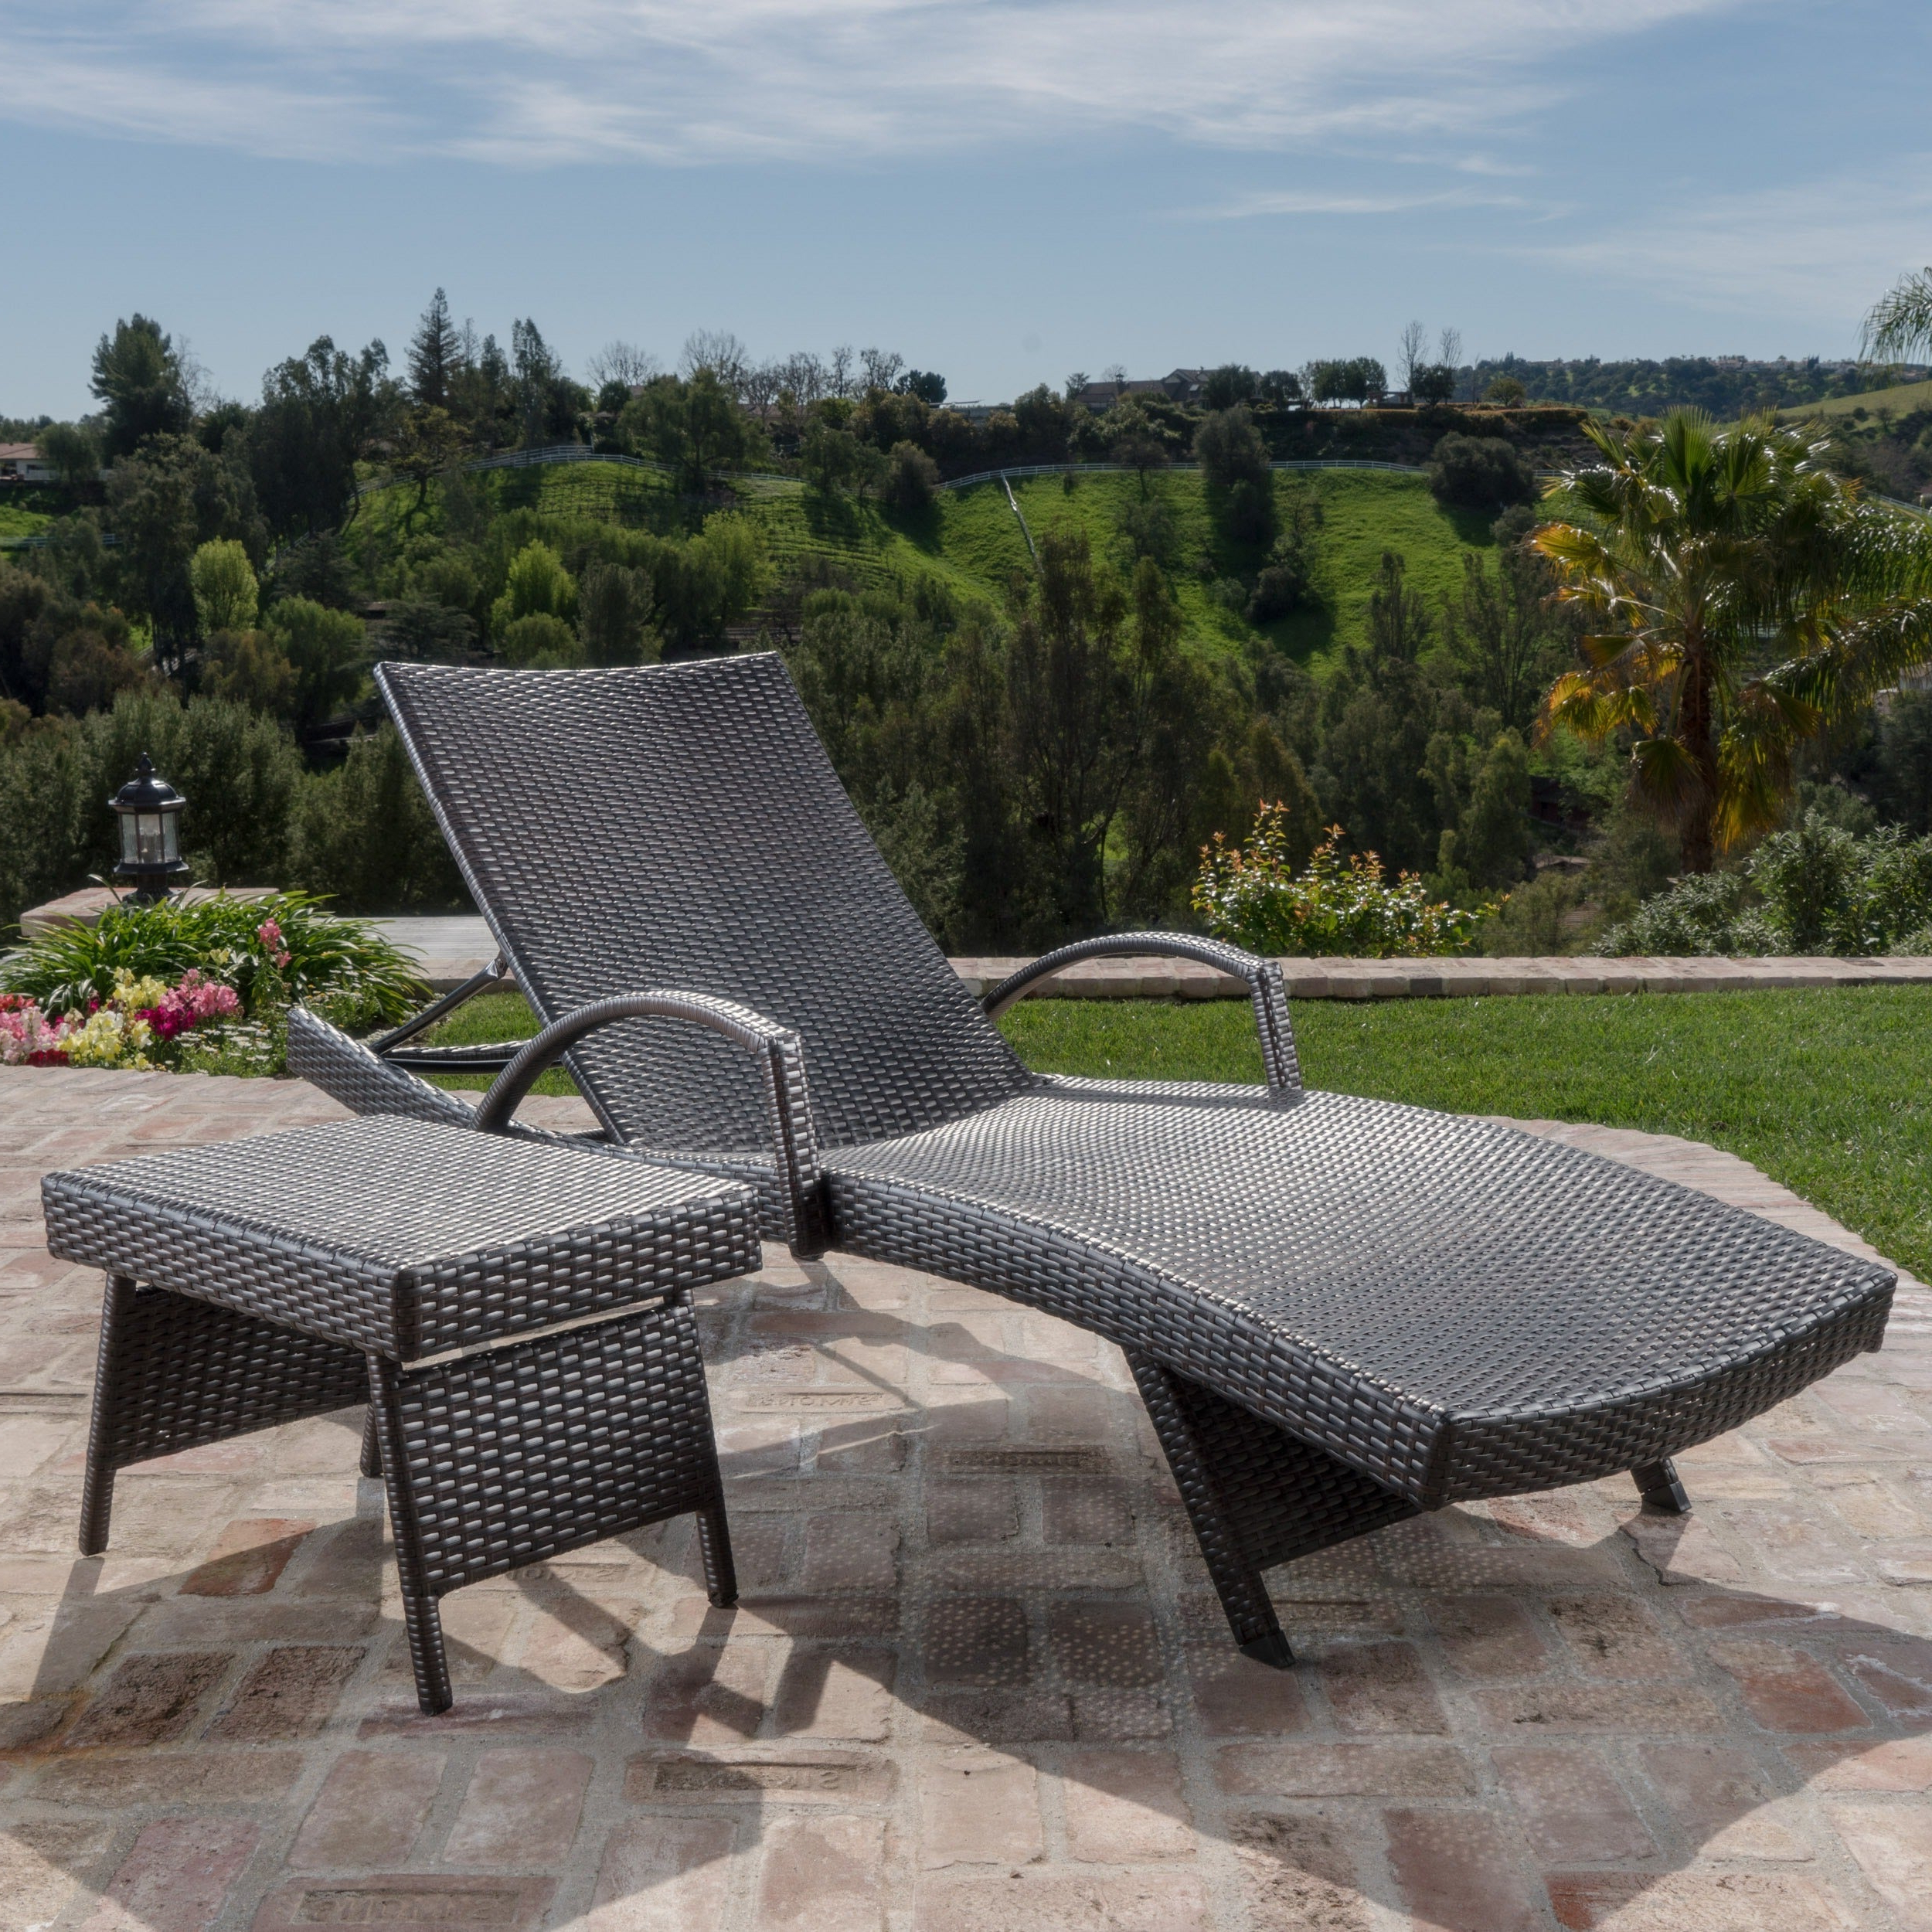 Havenside Home Surfside Relaxer Chaise Lounges Intended For Preferred Toscana Outdoor 2 Piece Wicker Armed Chaise Lounge Setchristopher Knight Home (View 15 of 25)